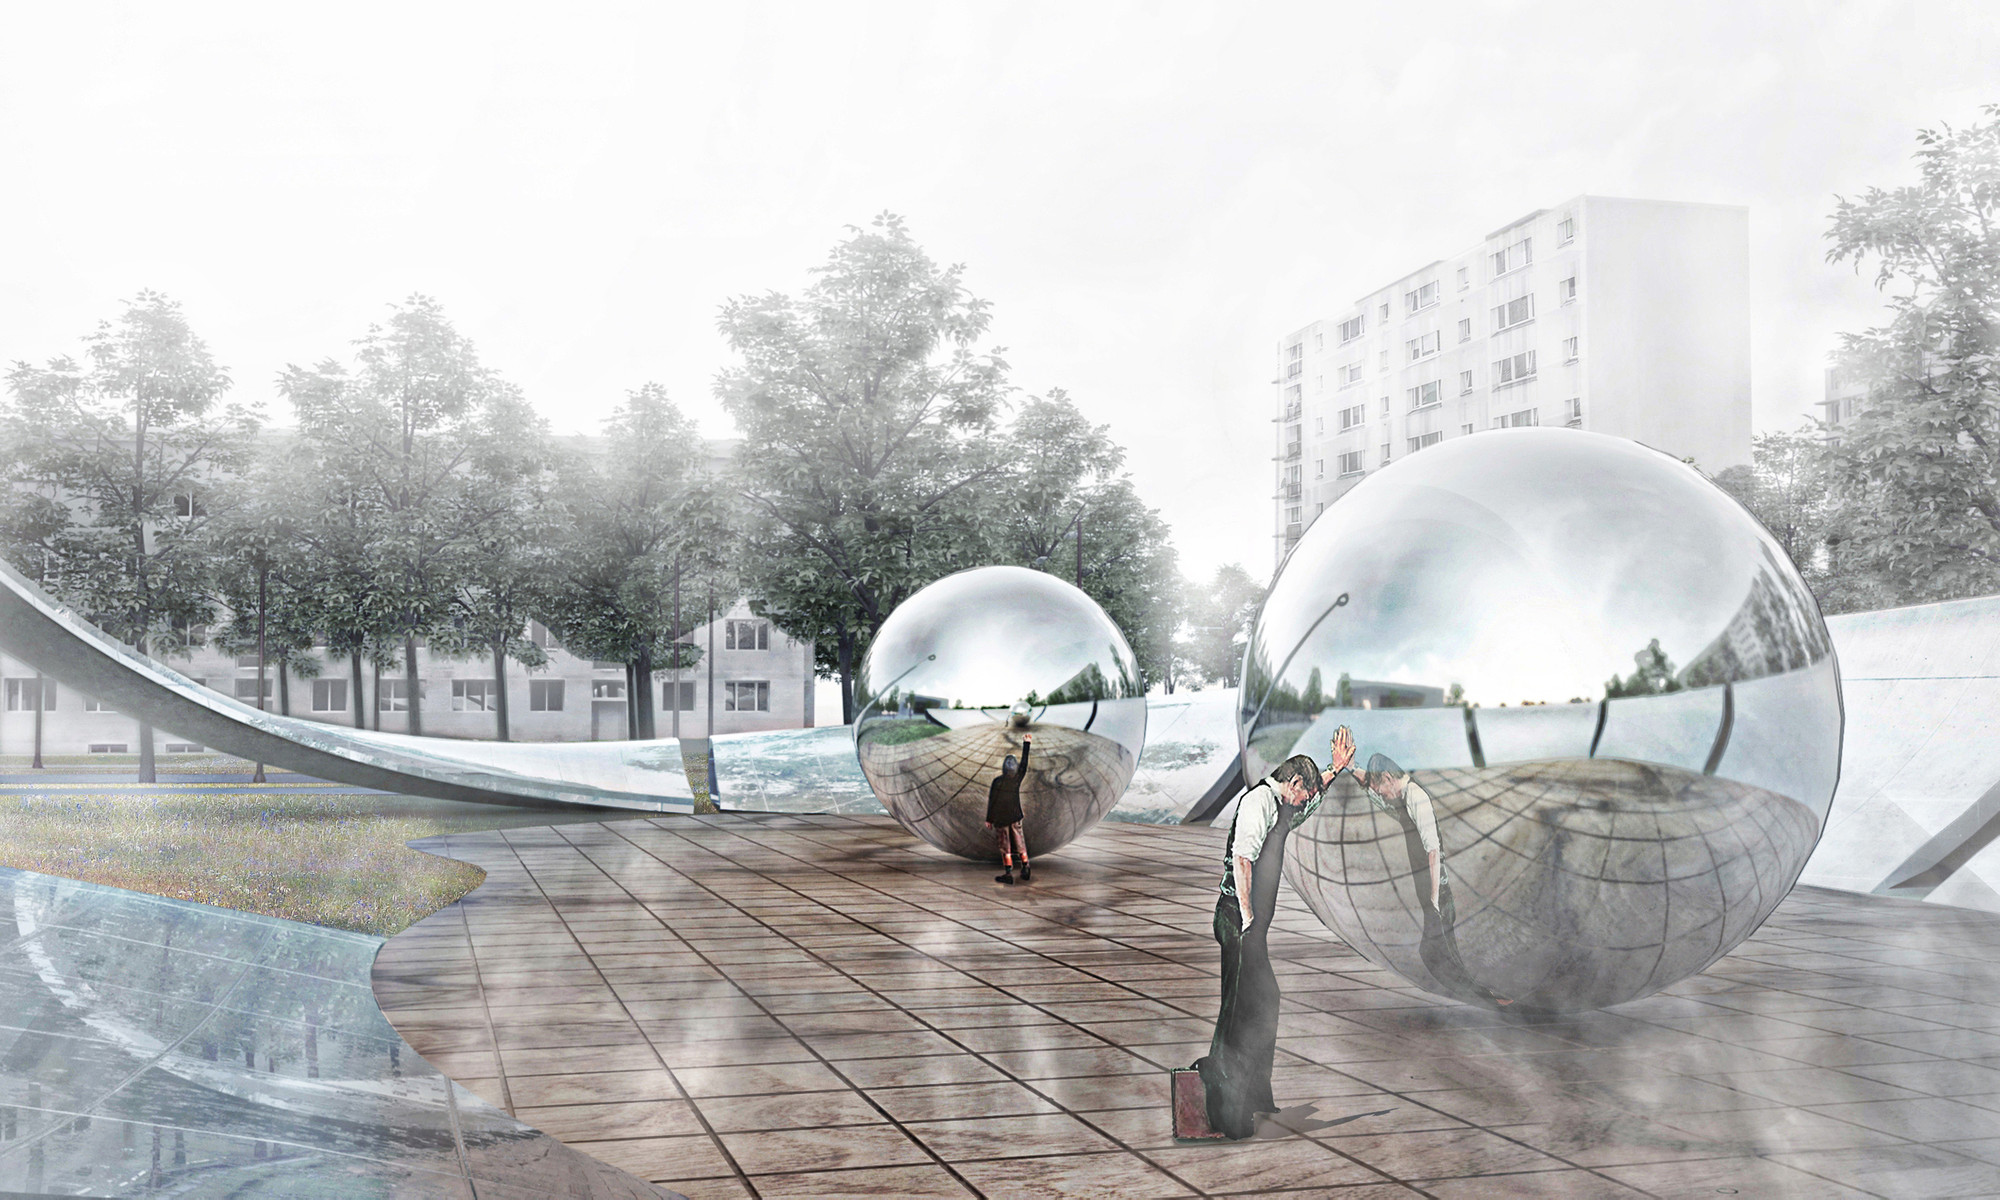 SO/AP Architectes' Warsaw Memorial Places Unity at its Center, Courtesy of SO/AP Architectes